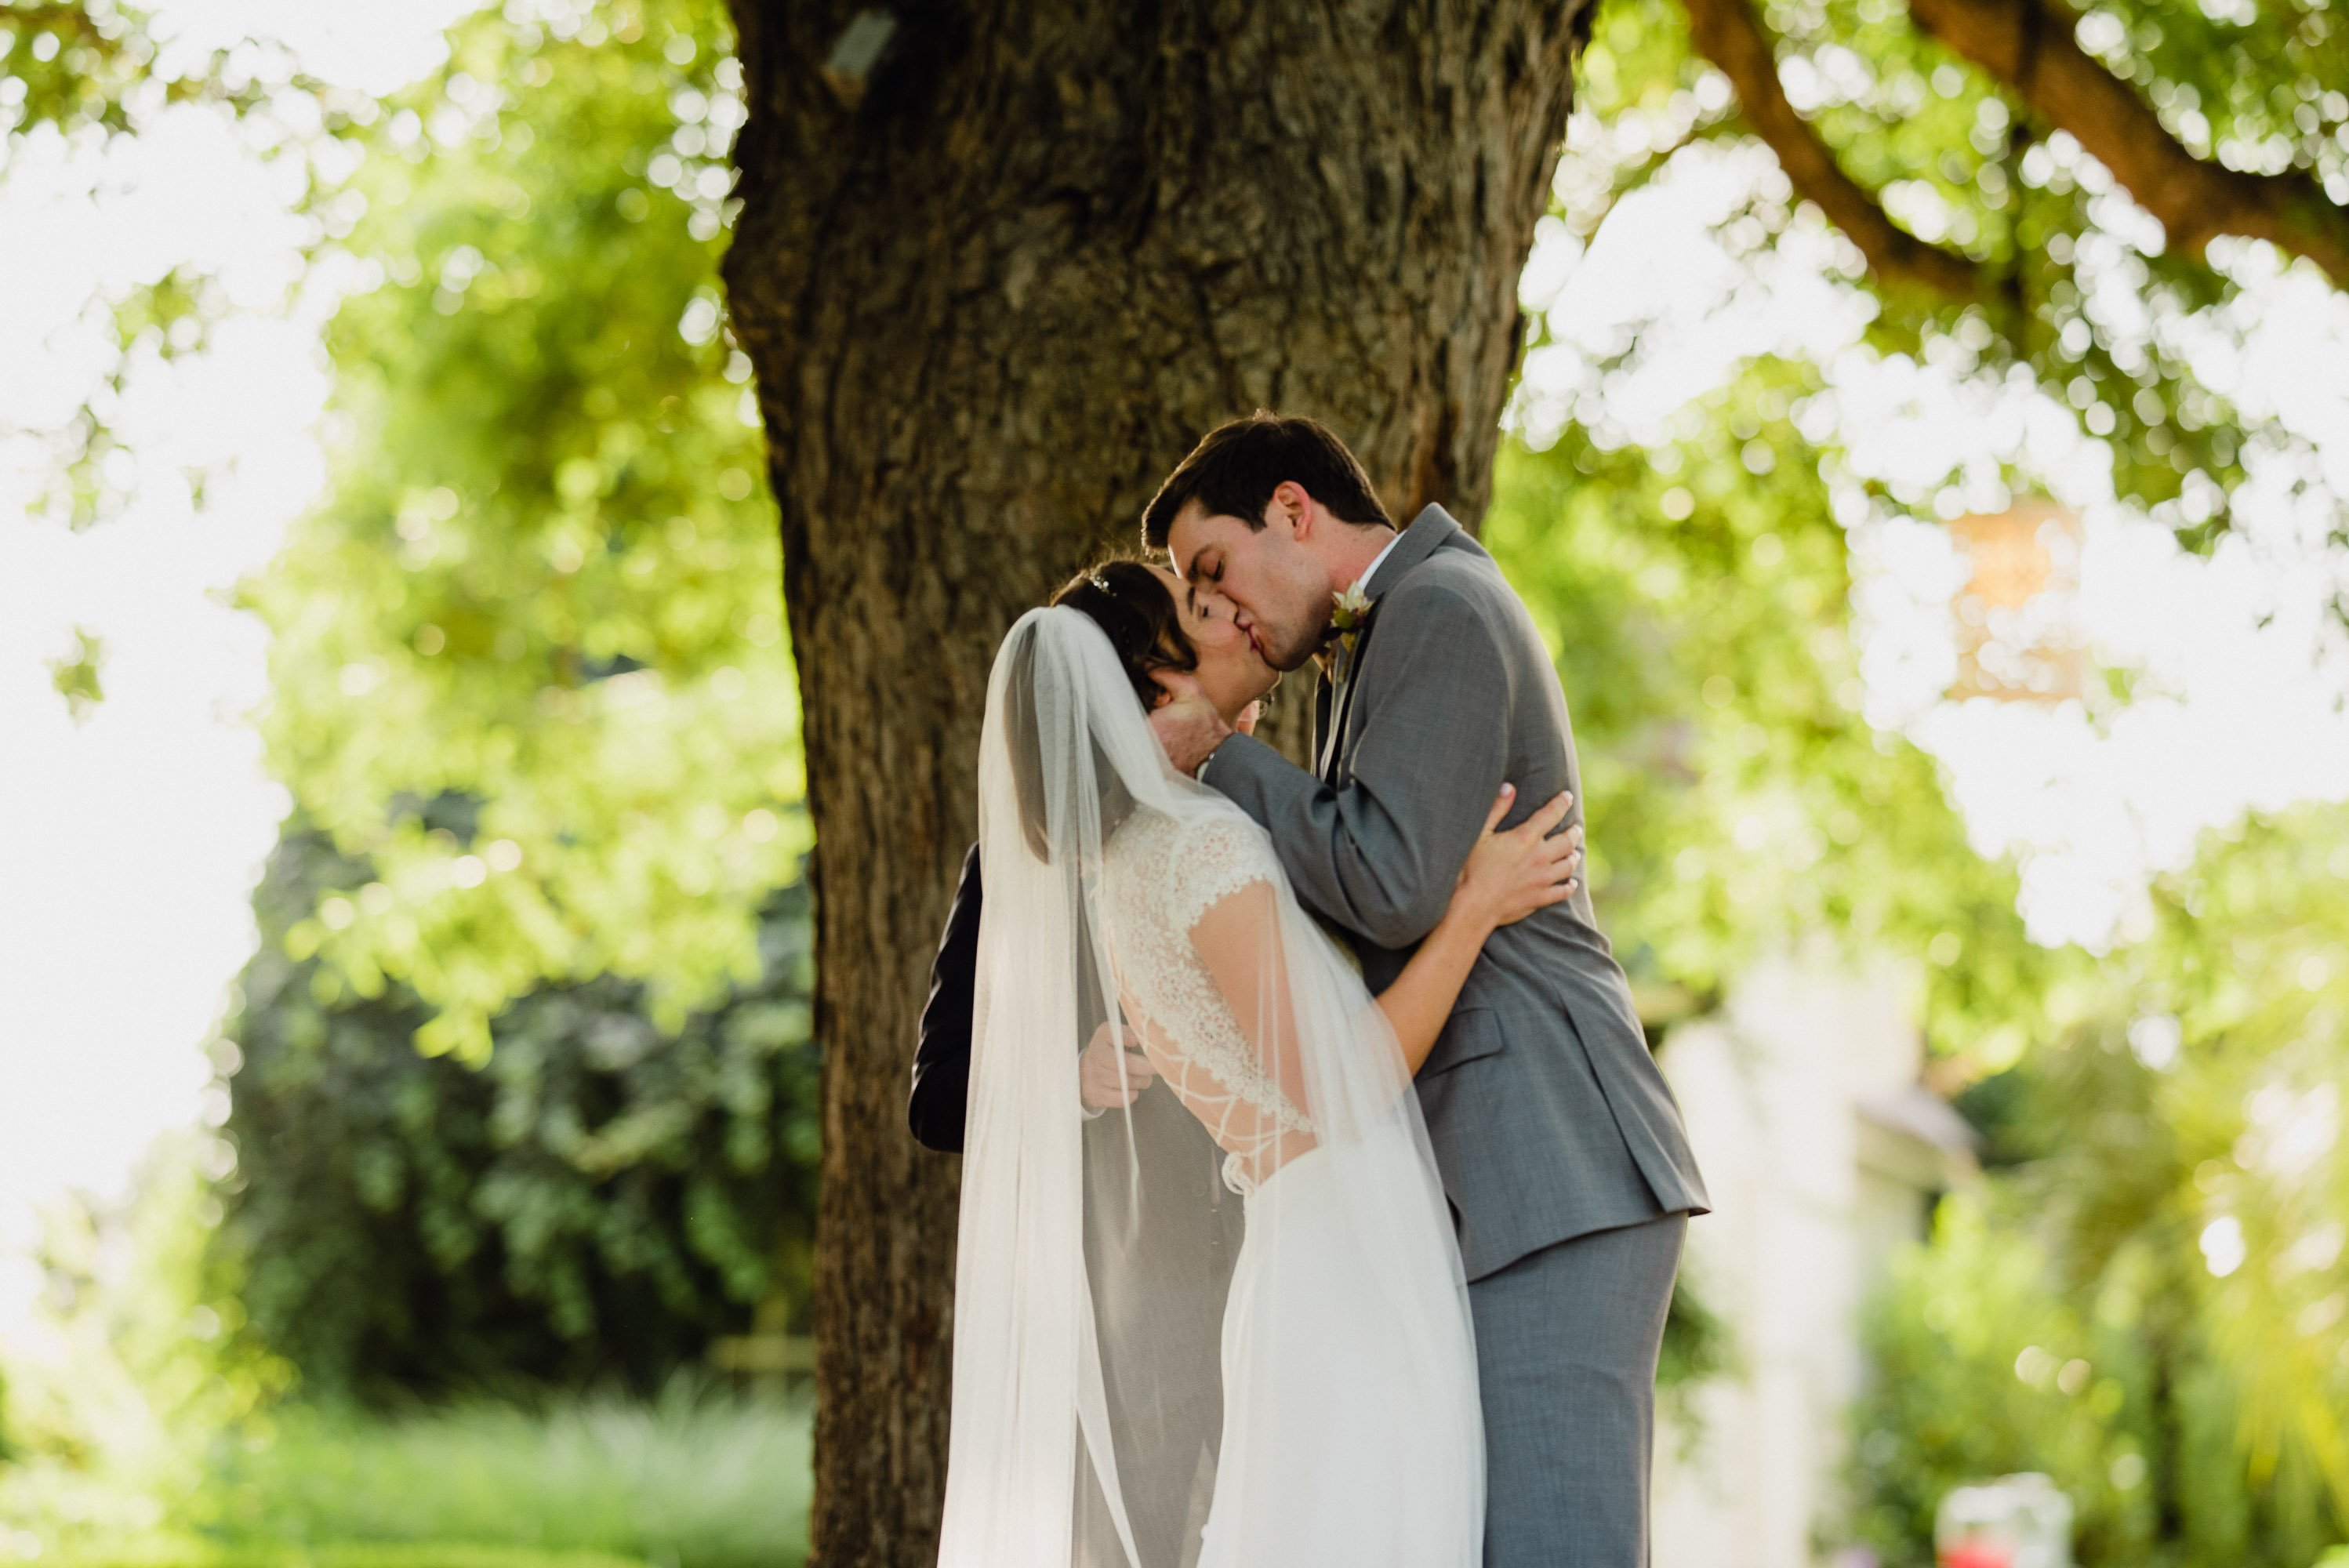 first kiss under the tree at barr mansion, romantic boho barr mansion wedding